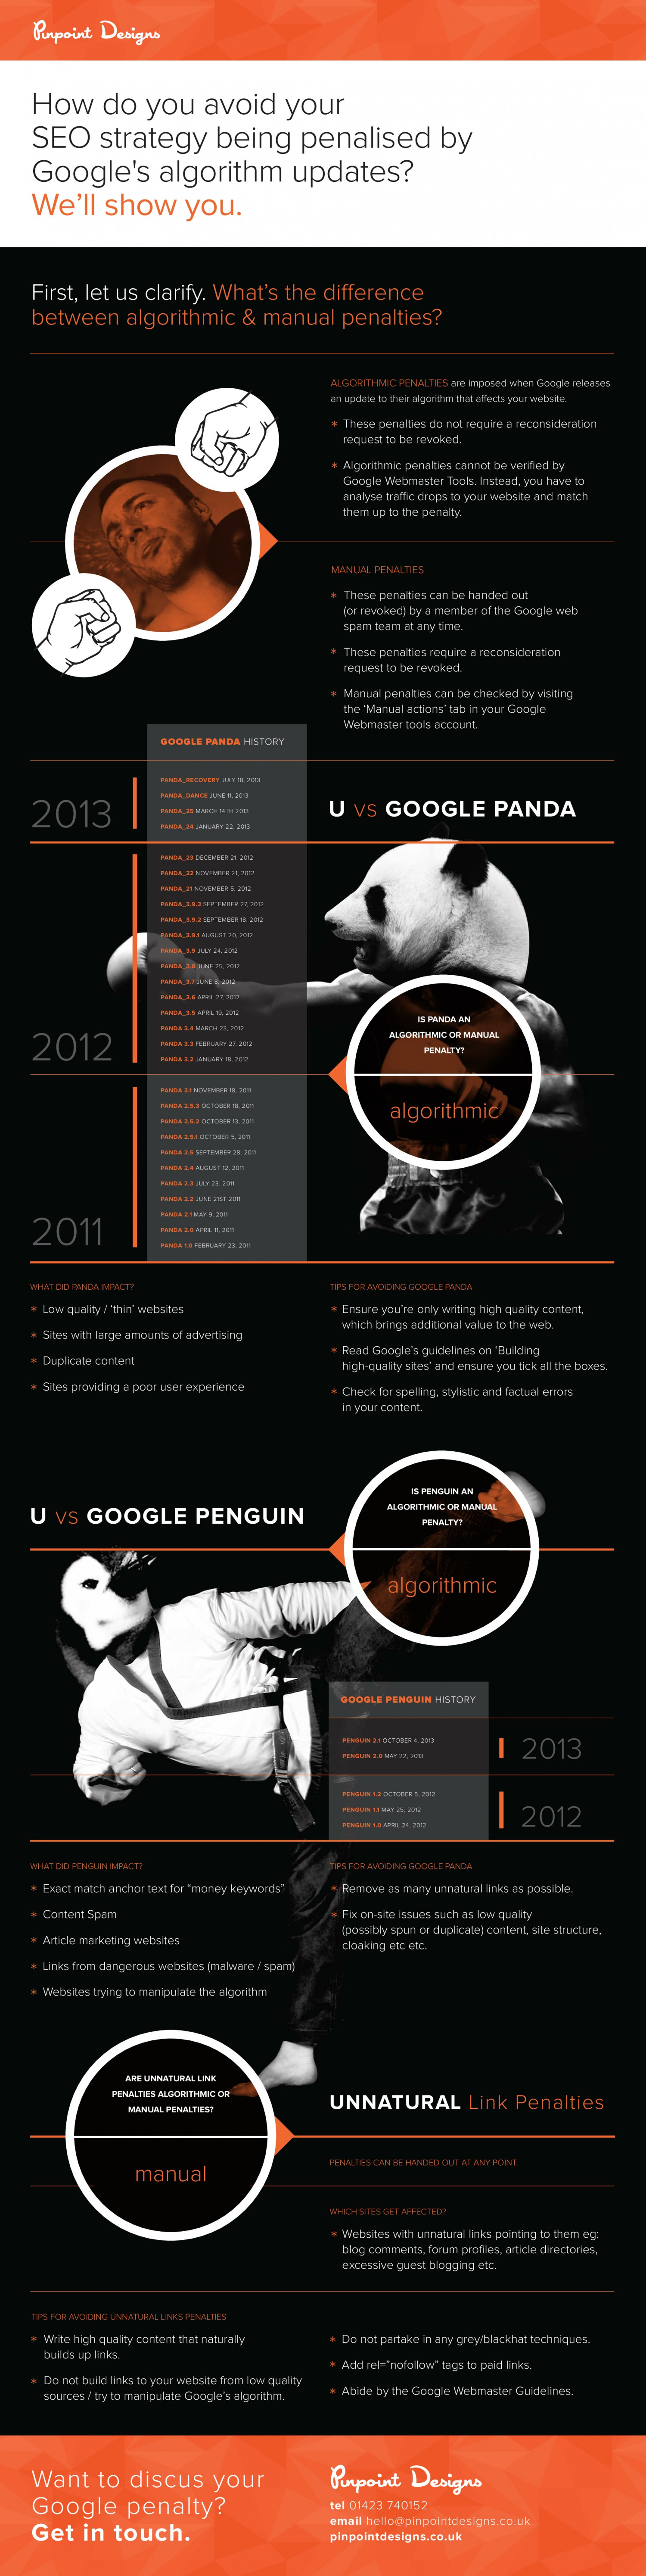 Google Penalties and Tips to Stay in the Clear Infographic